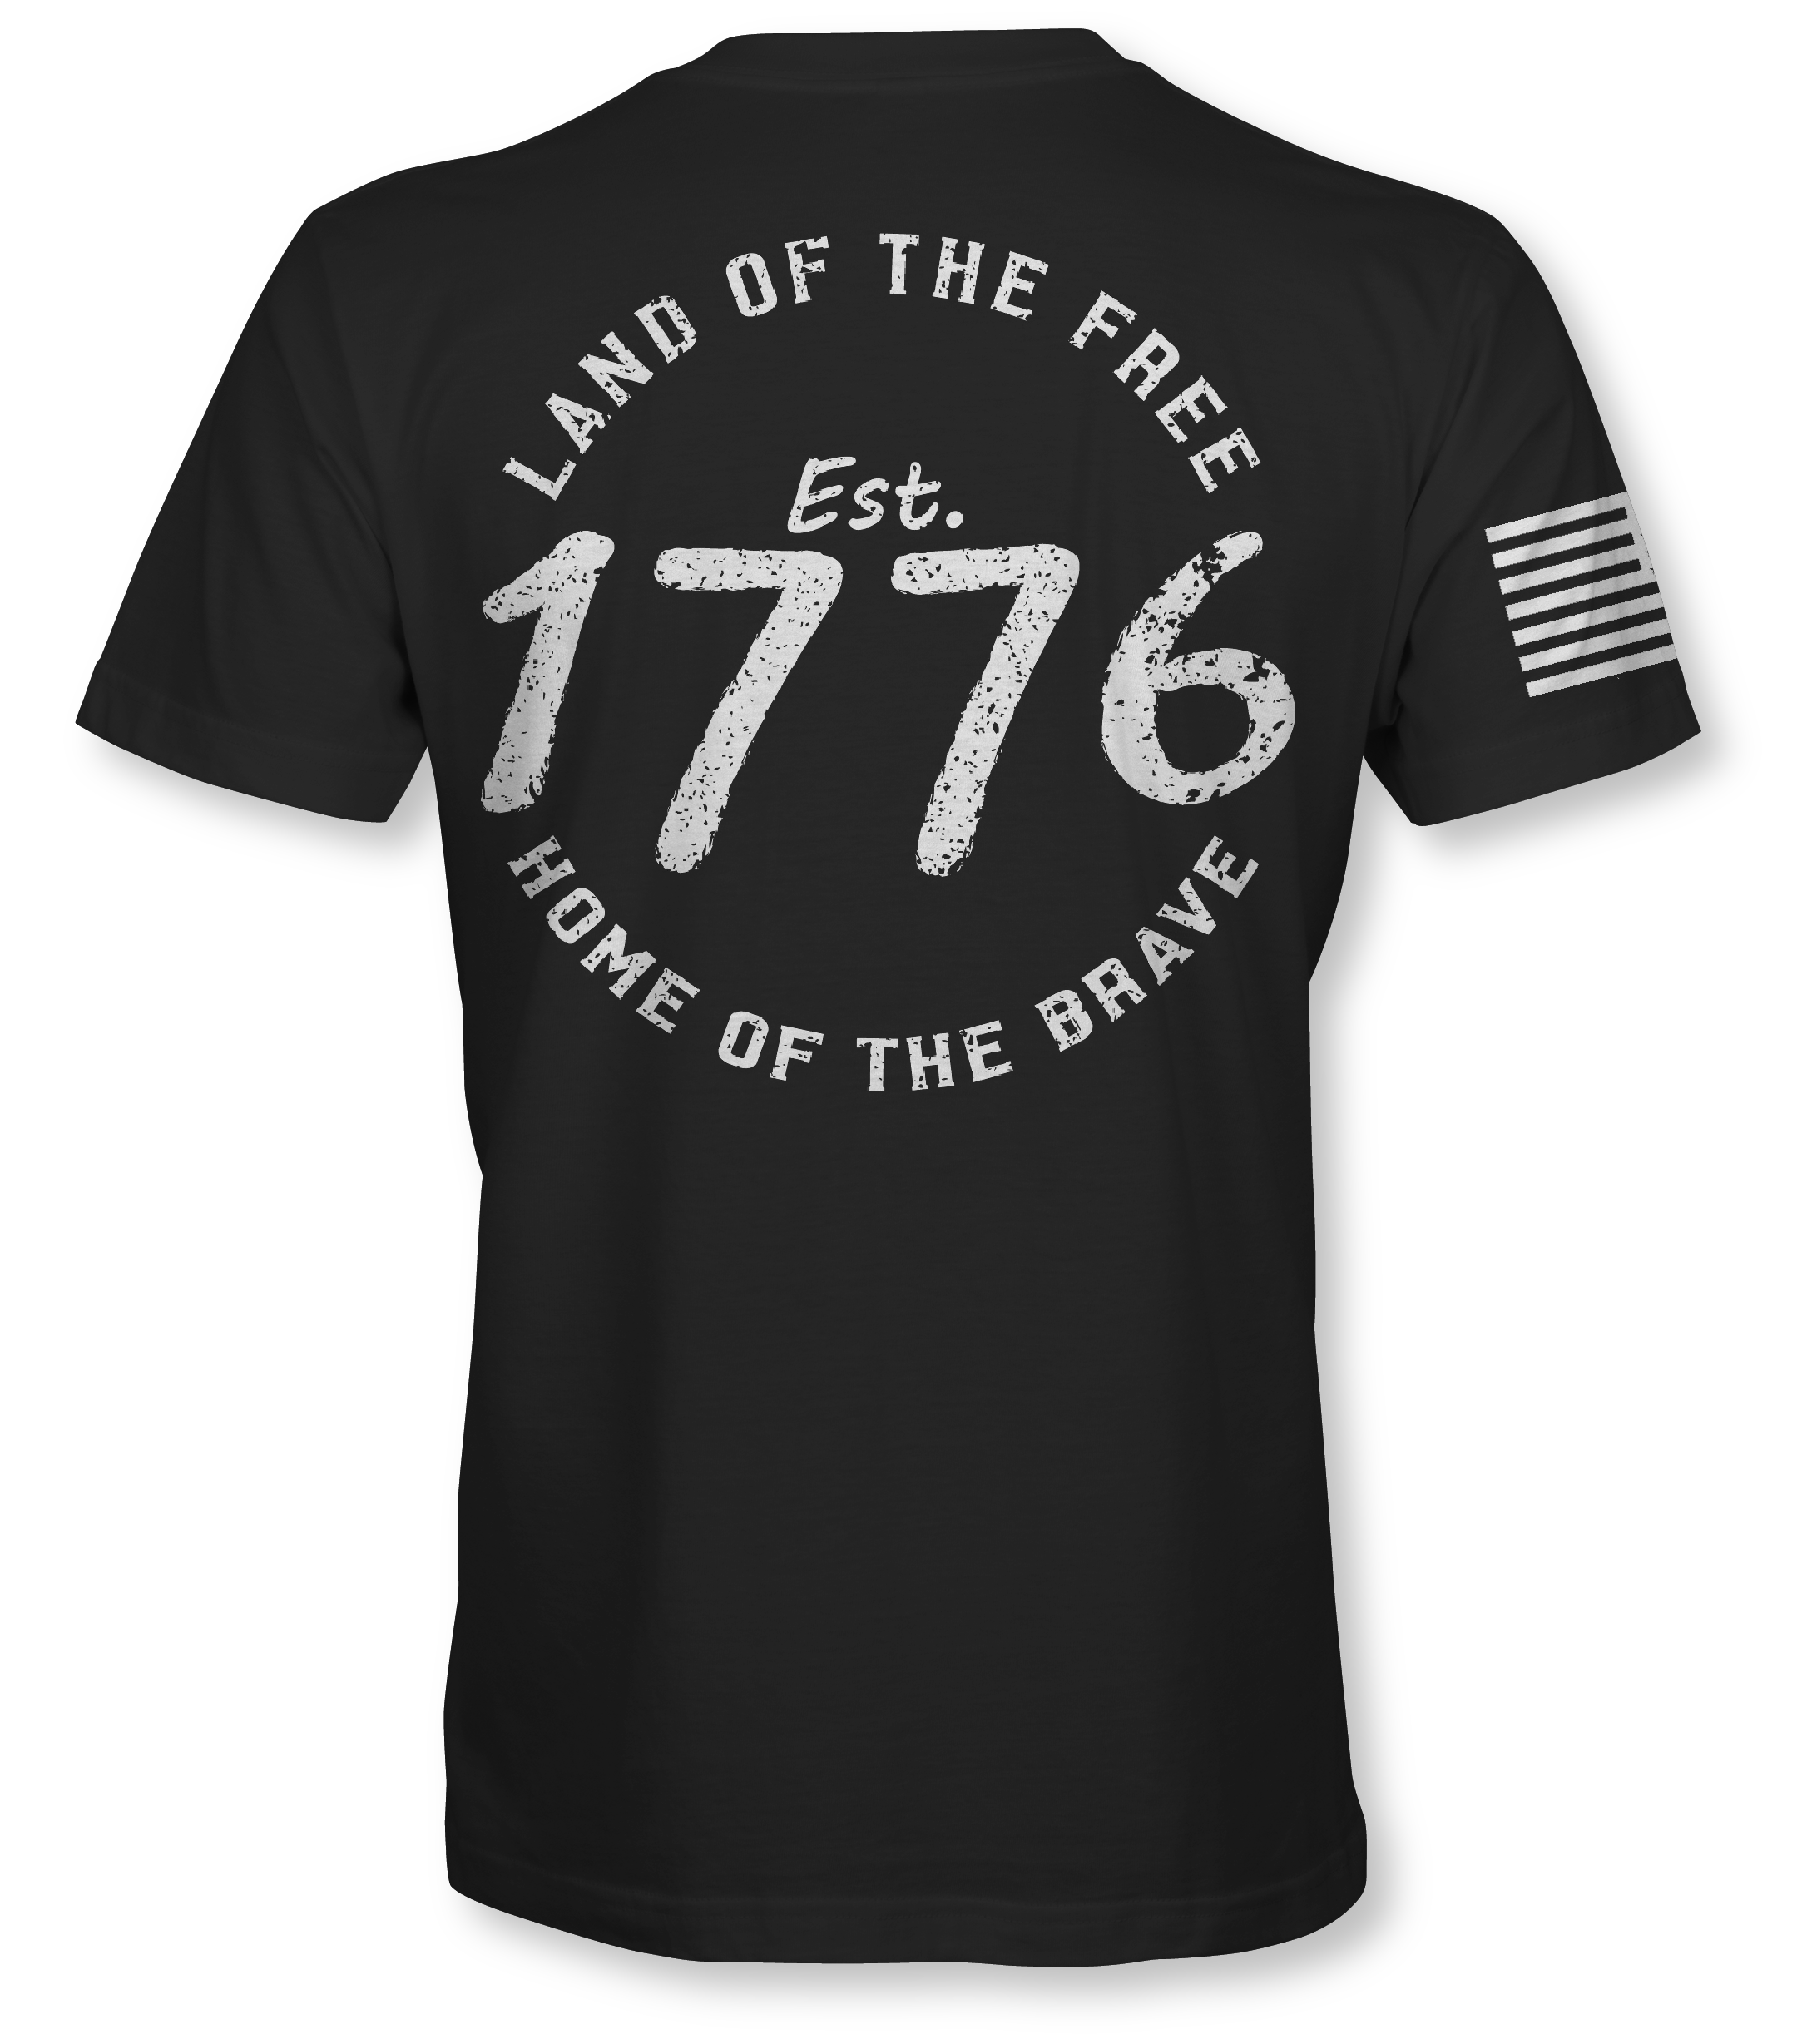 Land of the Free- Men's TP10011800030100